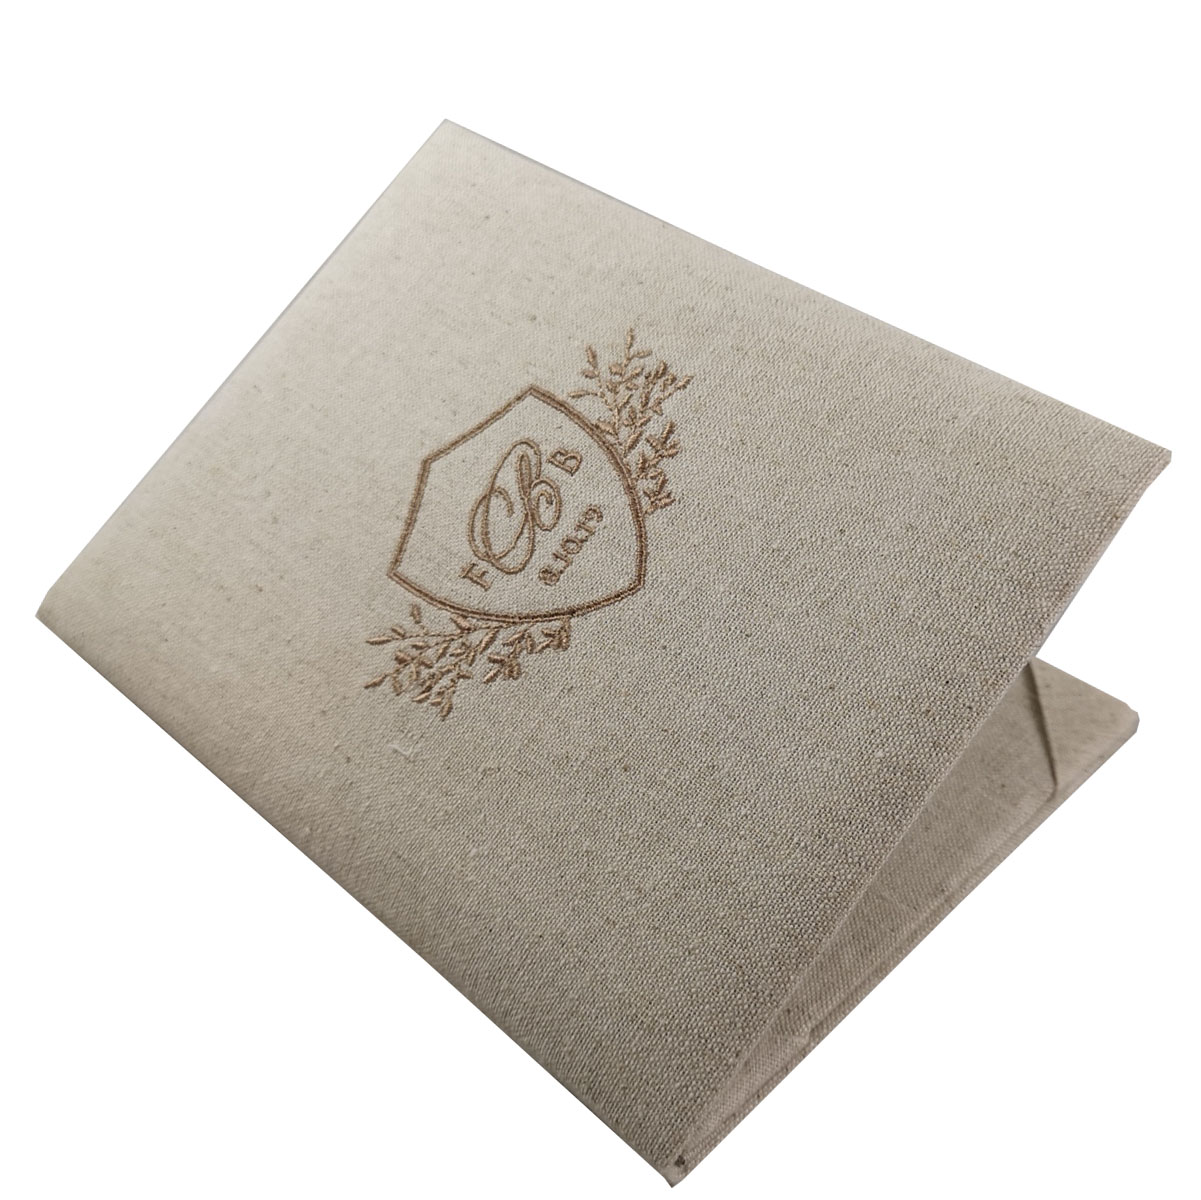 Buy high quality linen invitations online